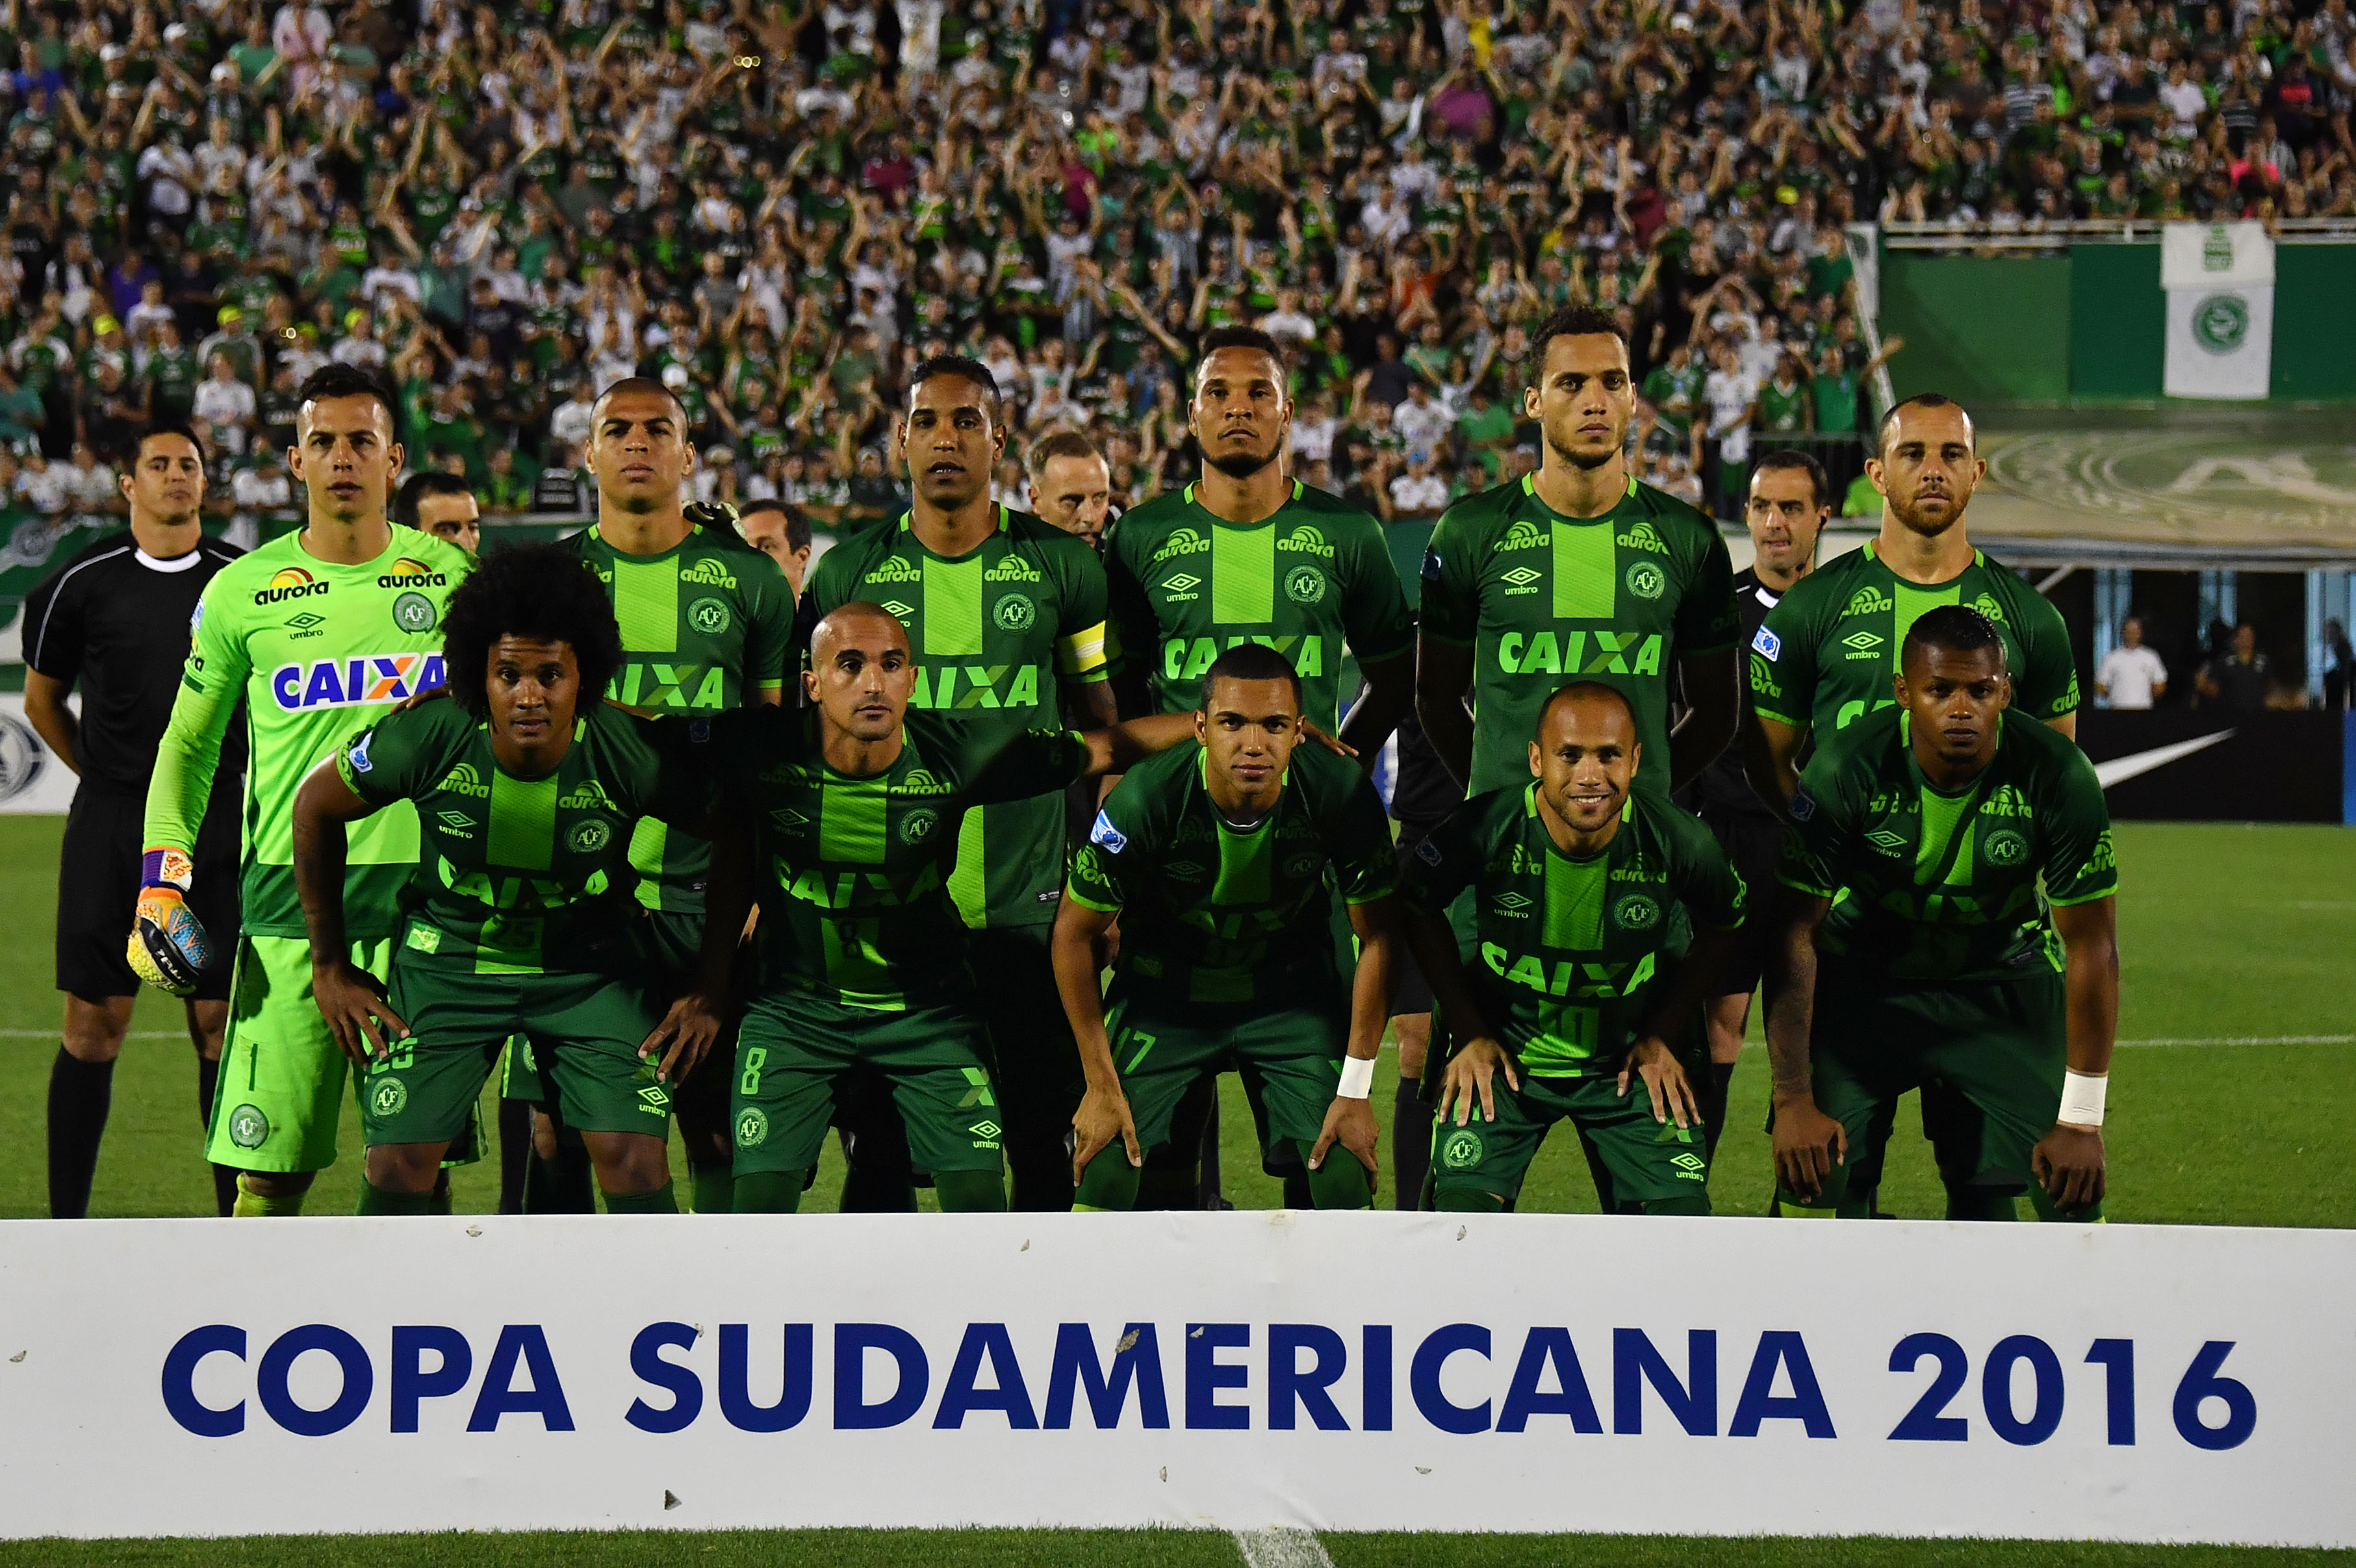 Brazil's Chapecoense players pose for pictures during their 2016 Copa Sudamericana semifinal second leg football match against Argentina's San Lorenzo held at Arena Conda stadium, in Chapeco, Brazil, on November 23, 2016. / AFP / NELSON ALMEIDA (Photo credit :NELSON ALMEIDA/AFP/Getty Images)